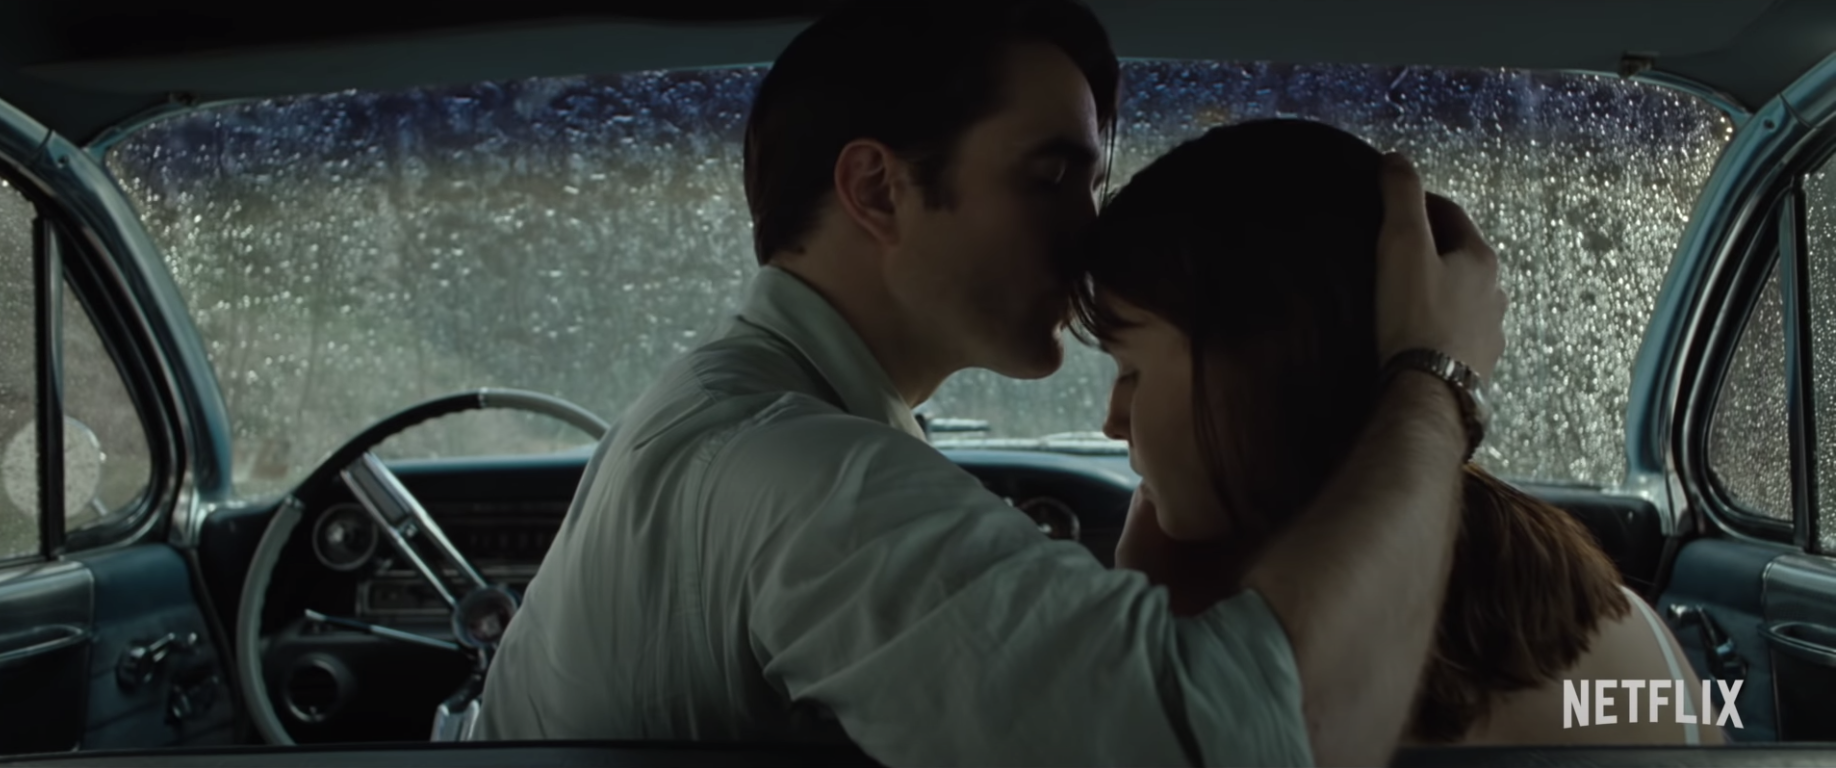 "Rev. Teagardin (Robert Pattinson) kissing Leonora's (Eliza Scanlen) forehead in the front seat of his car while it rains outside in ""The Devil All The Time."""